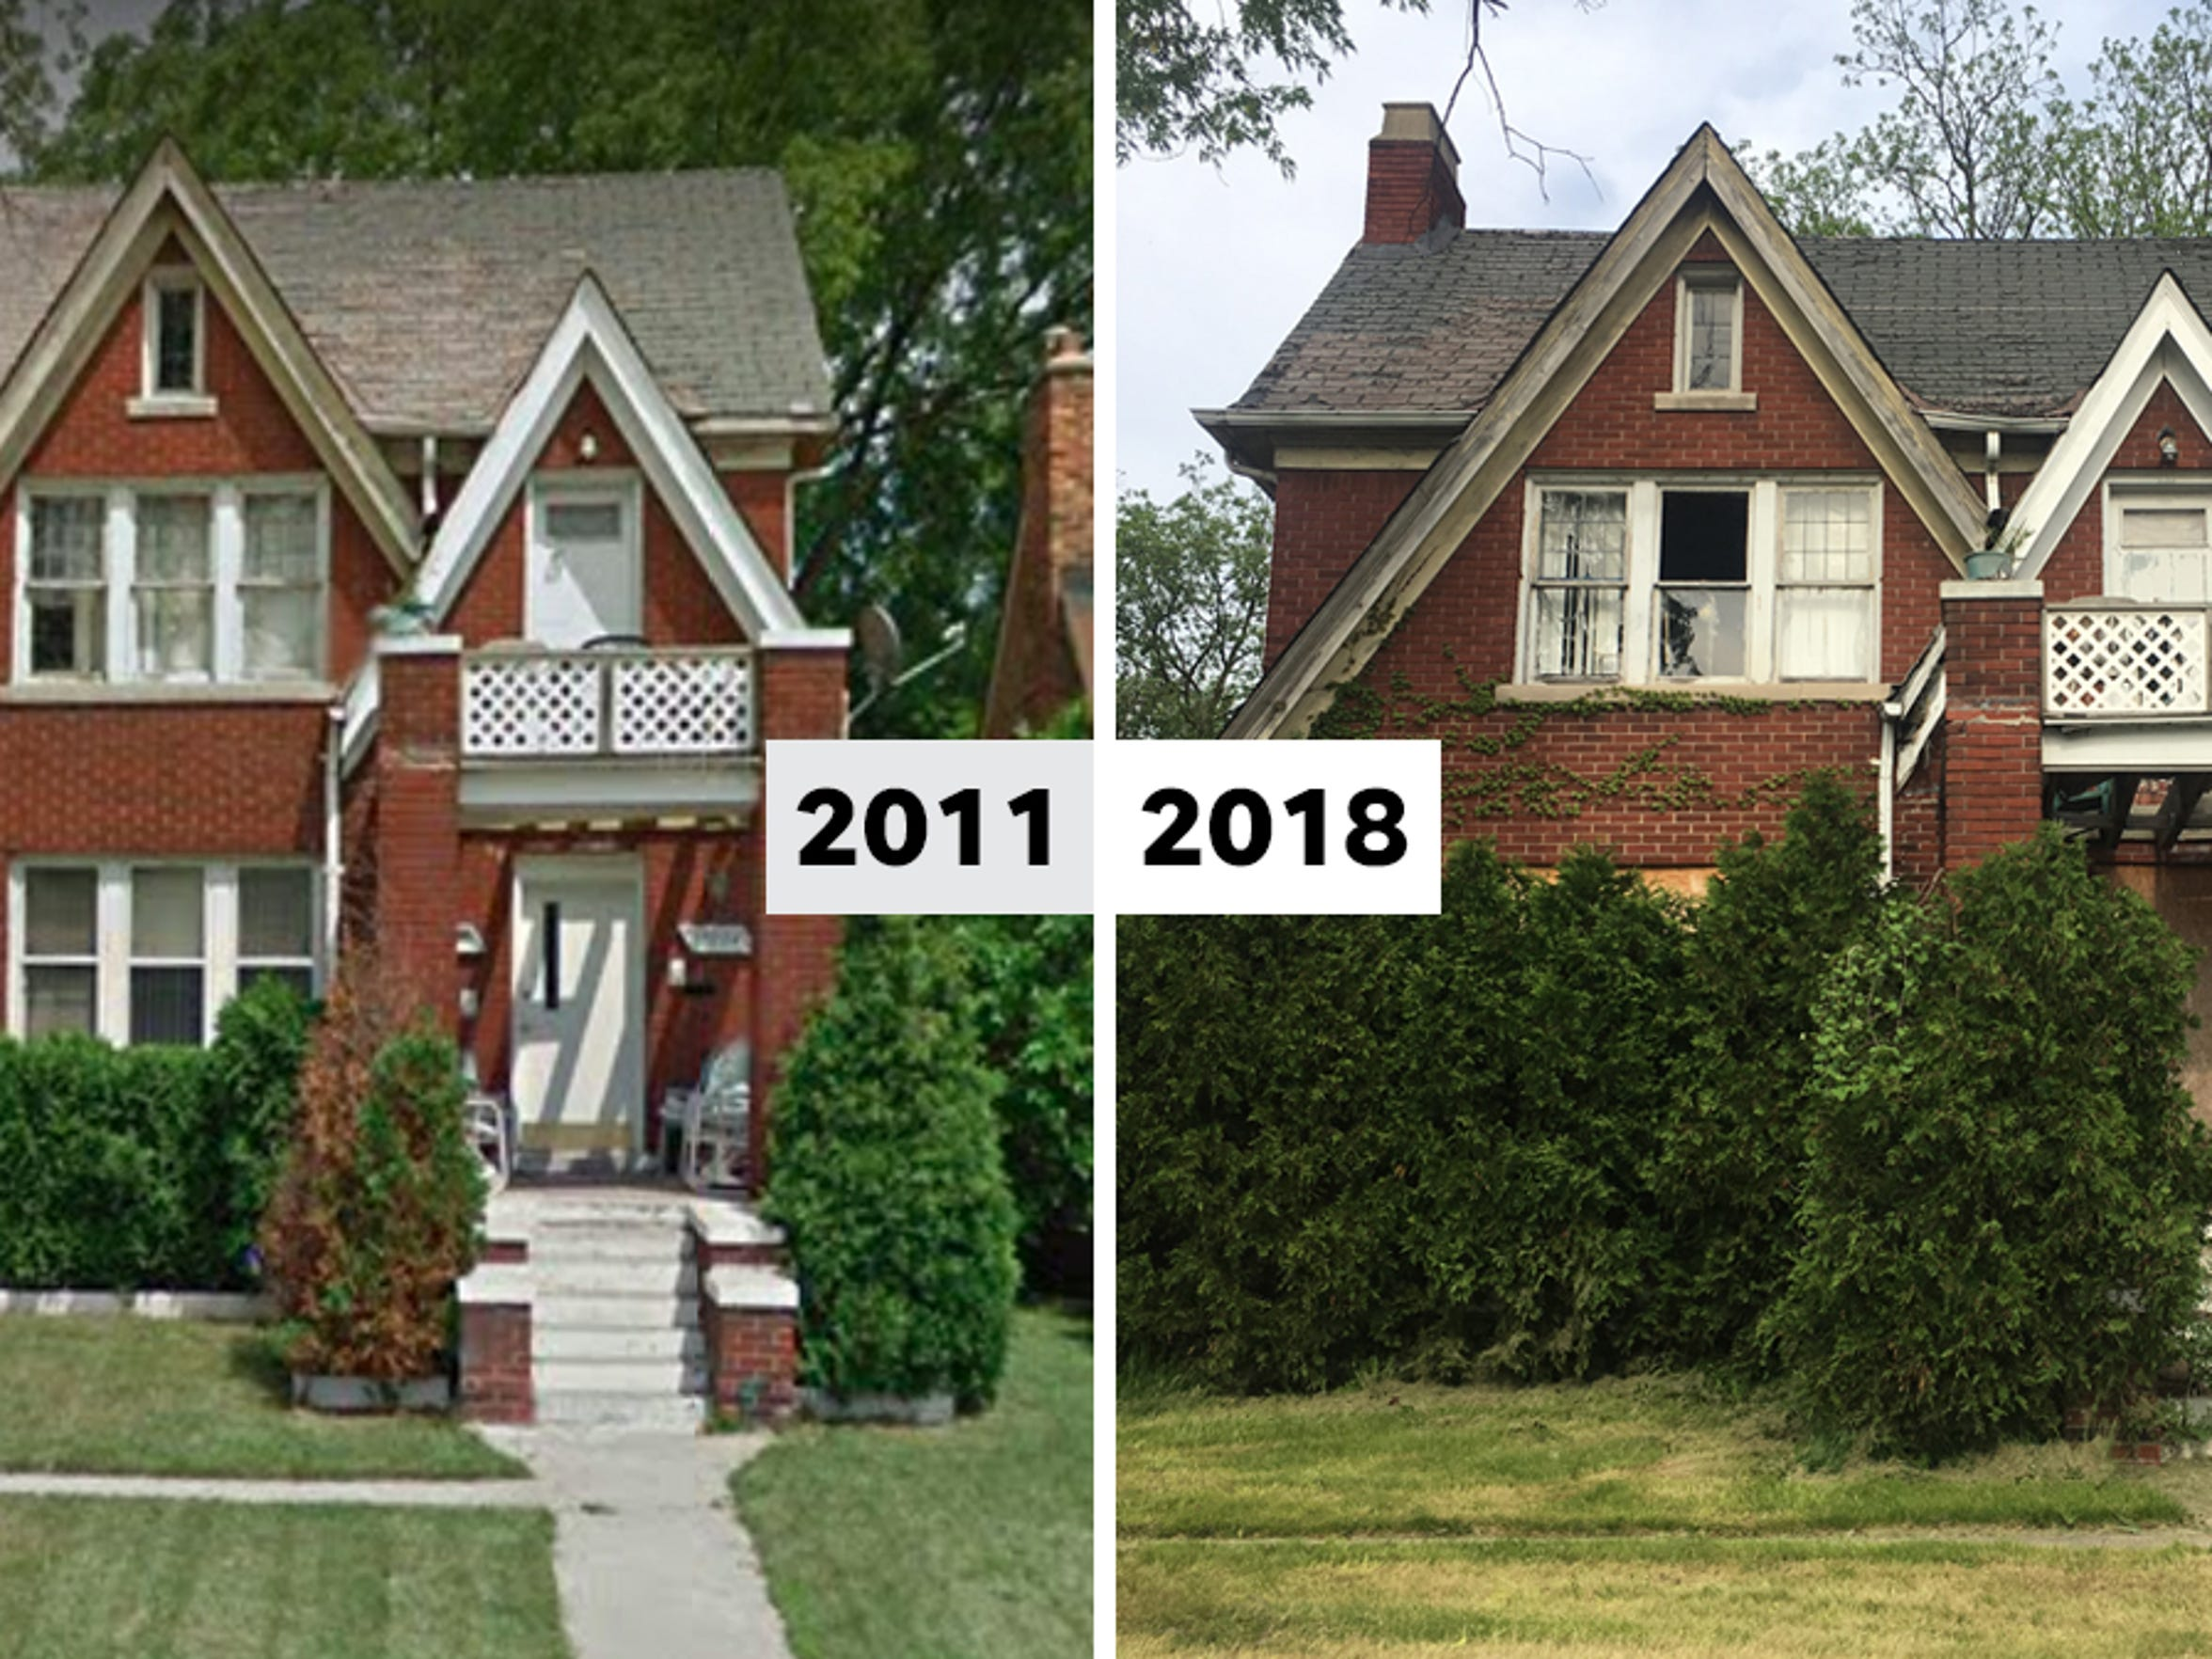 Speculative Detroit home buyers bringing down values